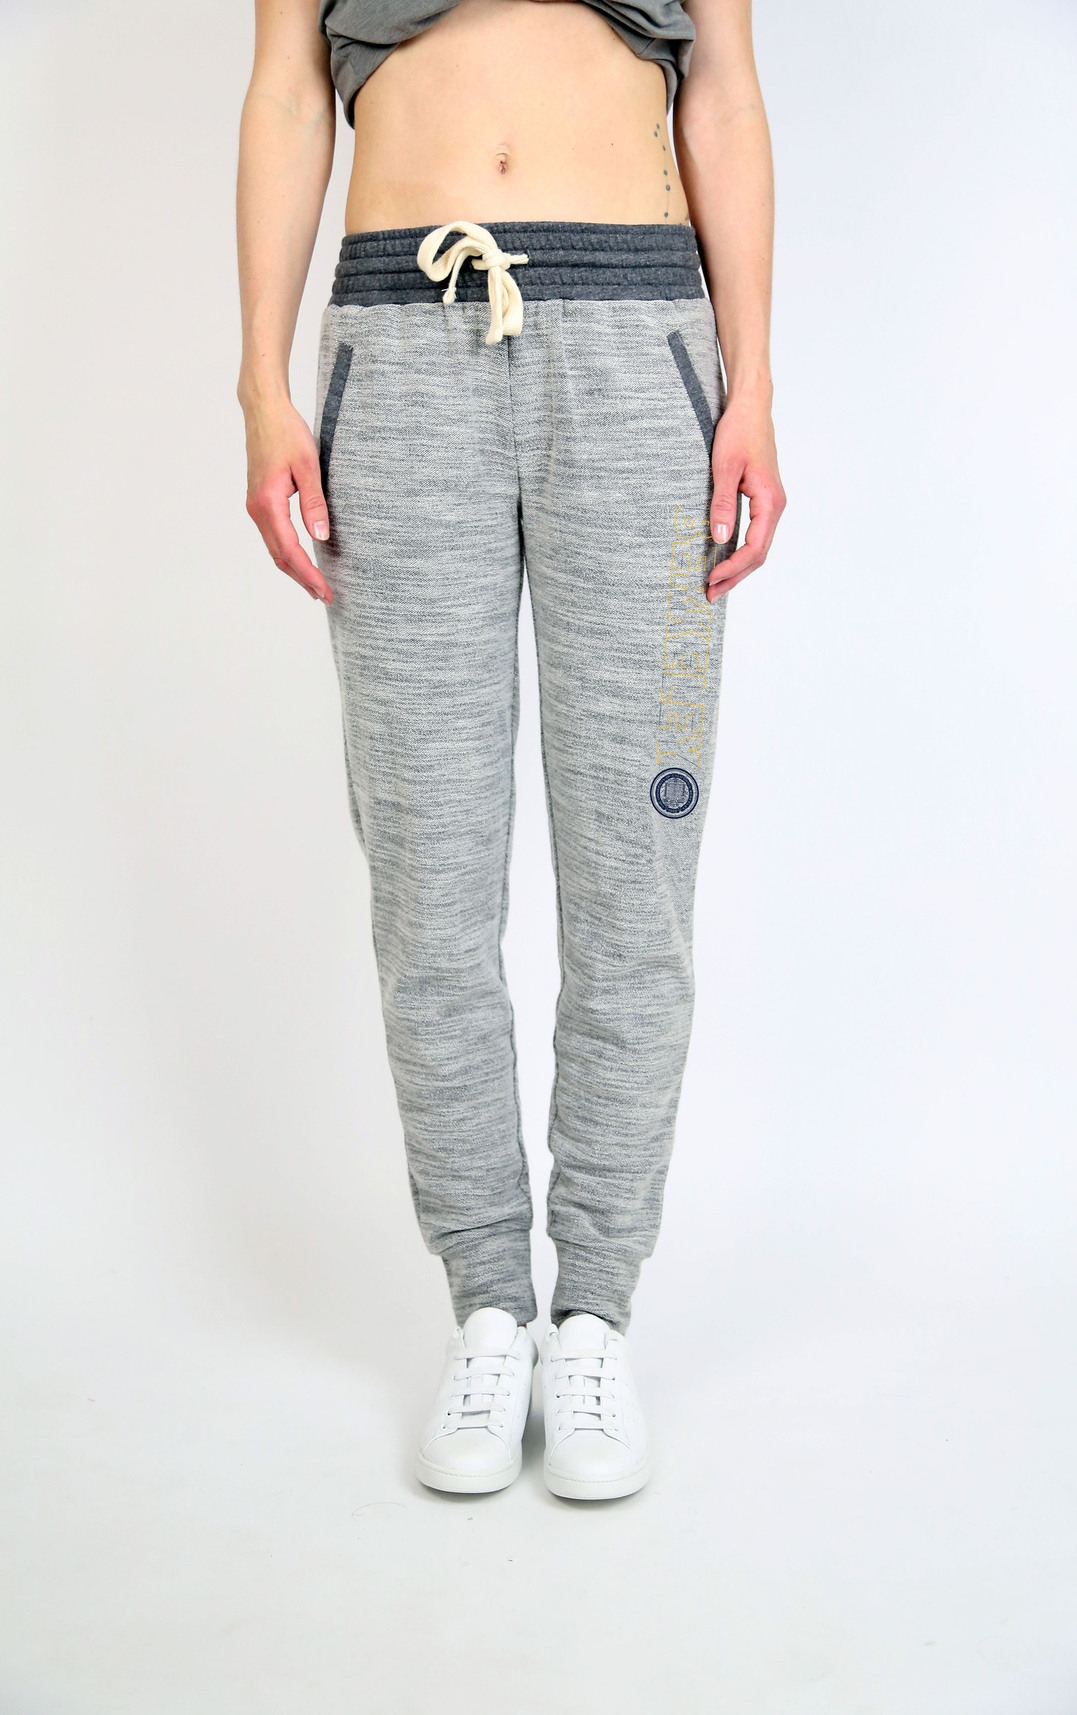 University of California Berkeley Women's Reverse Terry Pant by Campus Crew